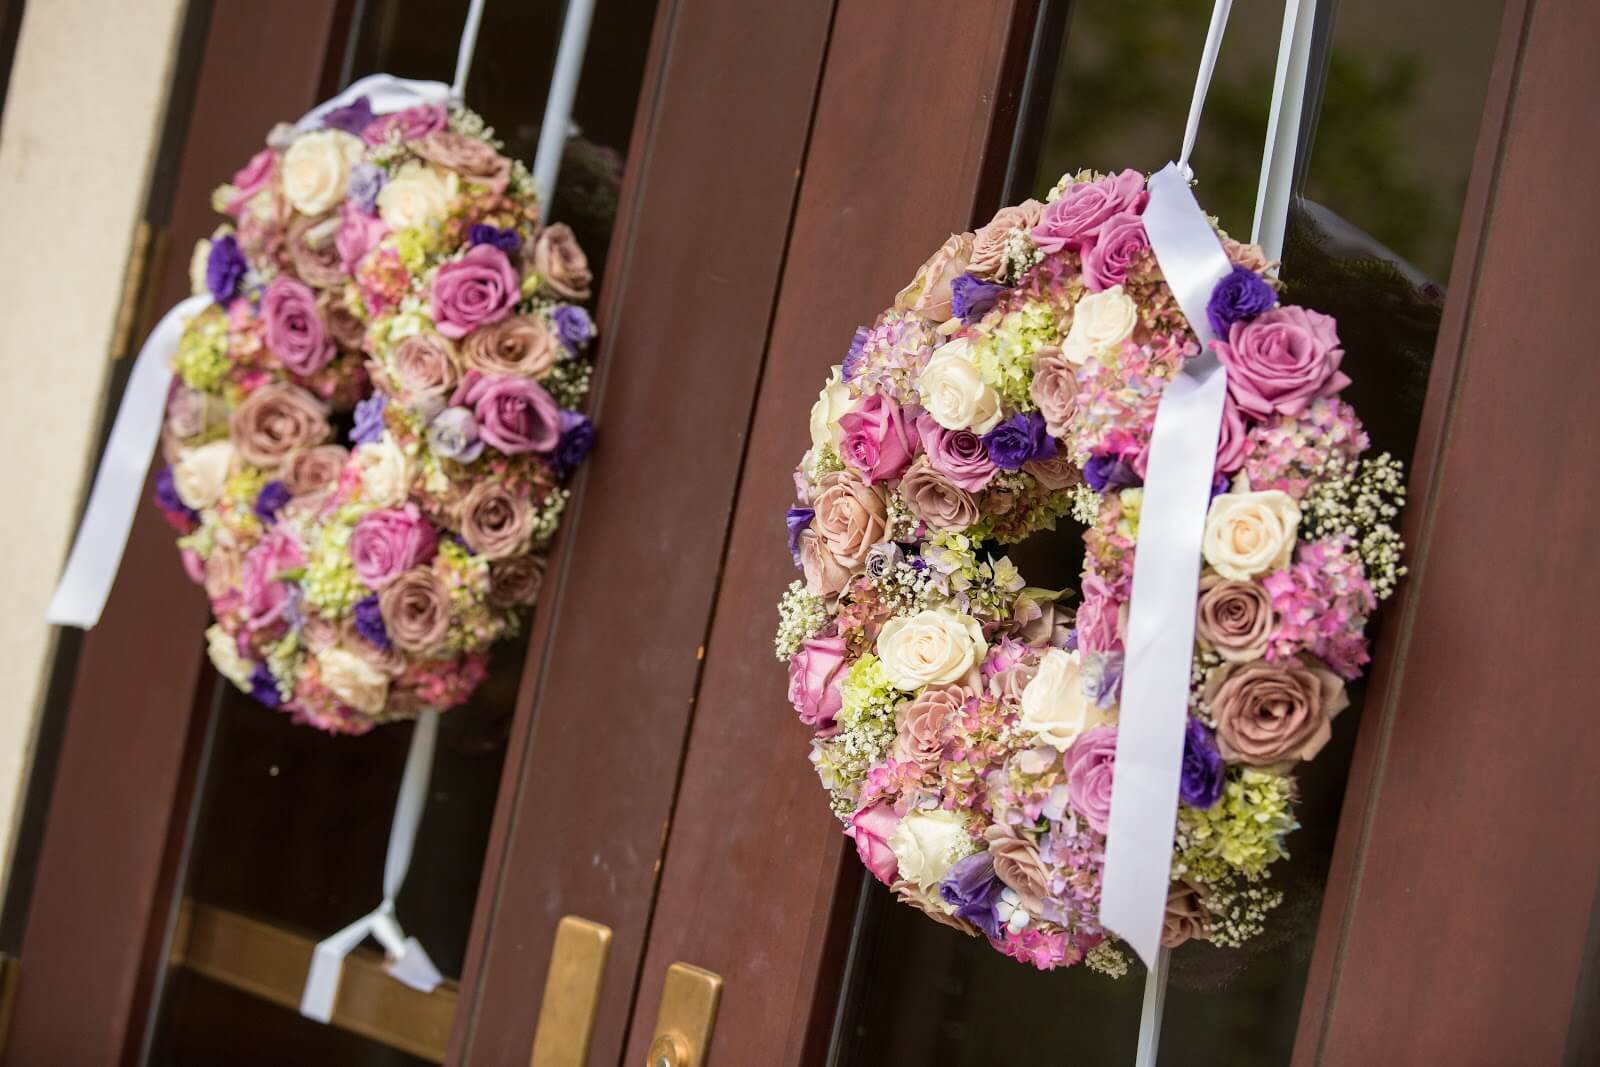 Ceremony Decor - Wreaths for the Chruch Doors |